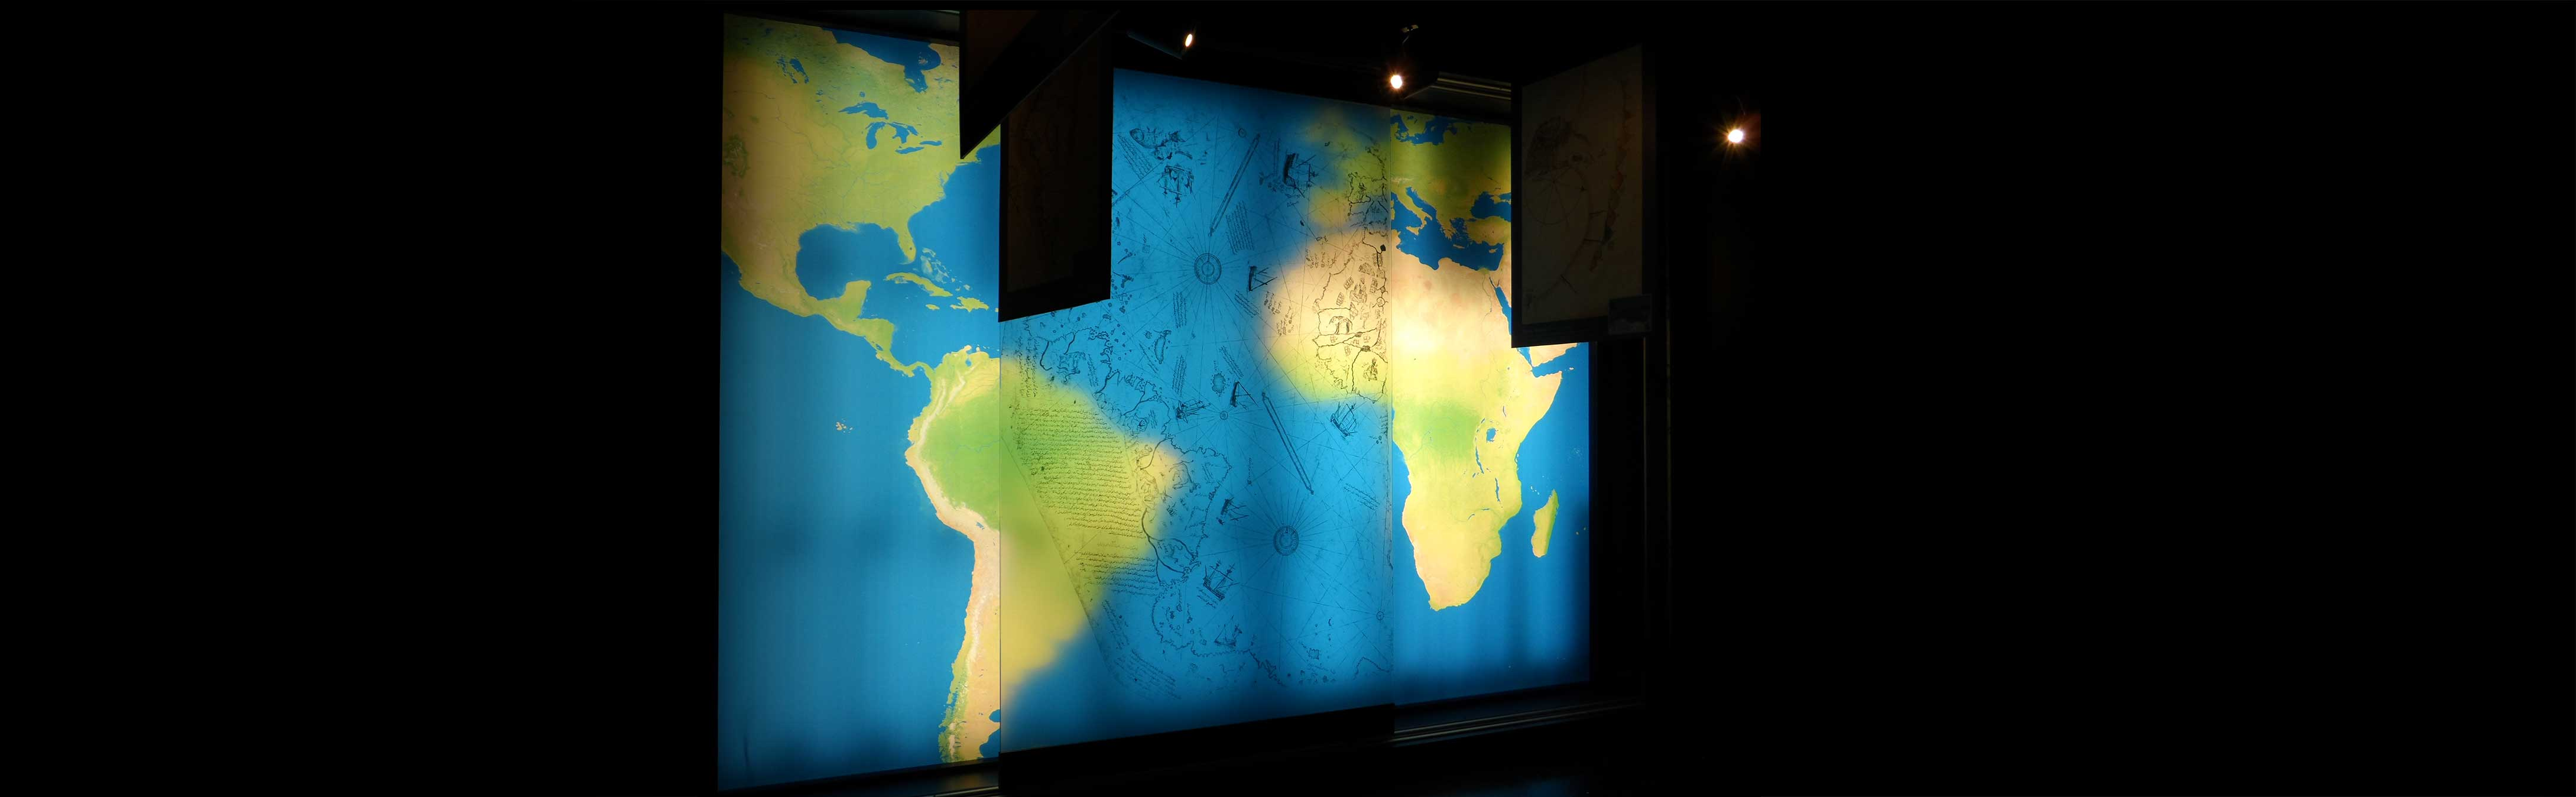 Piri Reis and His Maps Exhibition